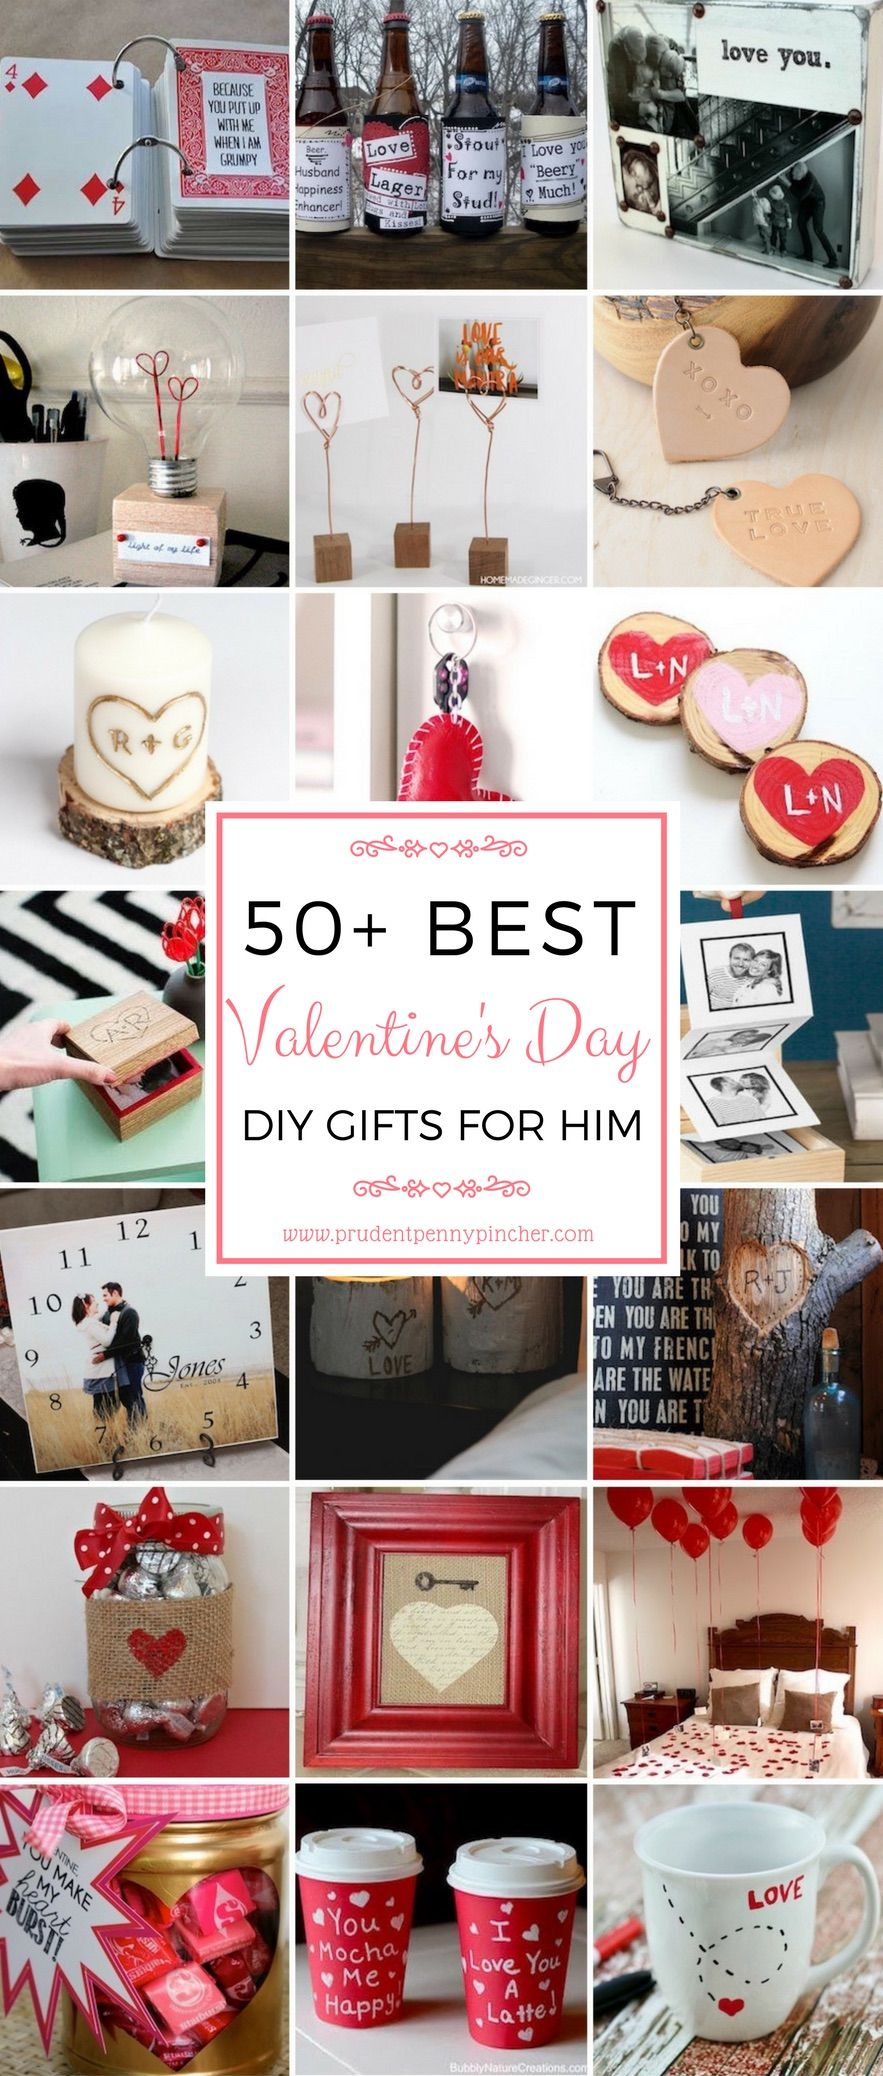 50 diy valentines day gifts for him prudent penny pincher 50 diy valentines day gifts for him valentinesday valentinesdaygiftideas solutioingenieria Images